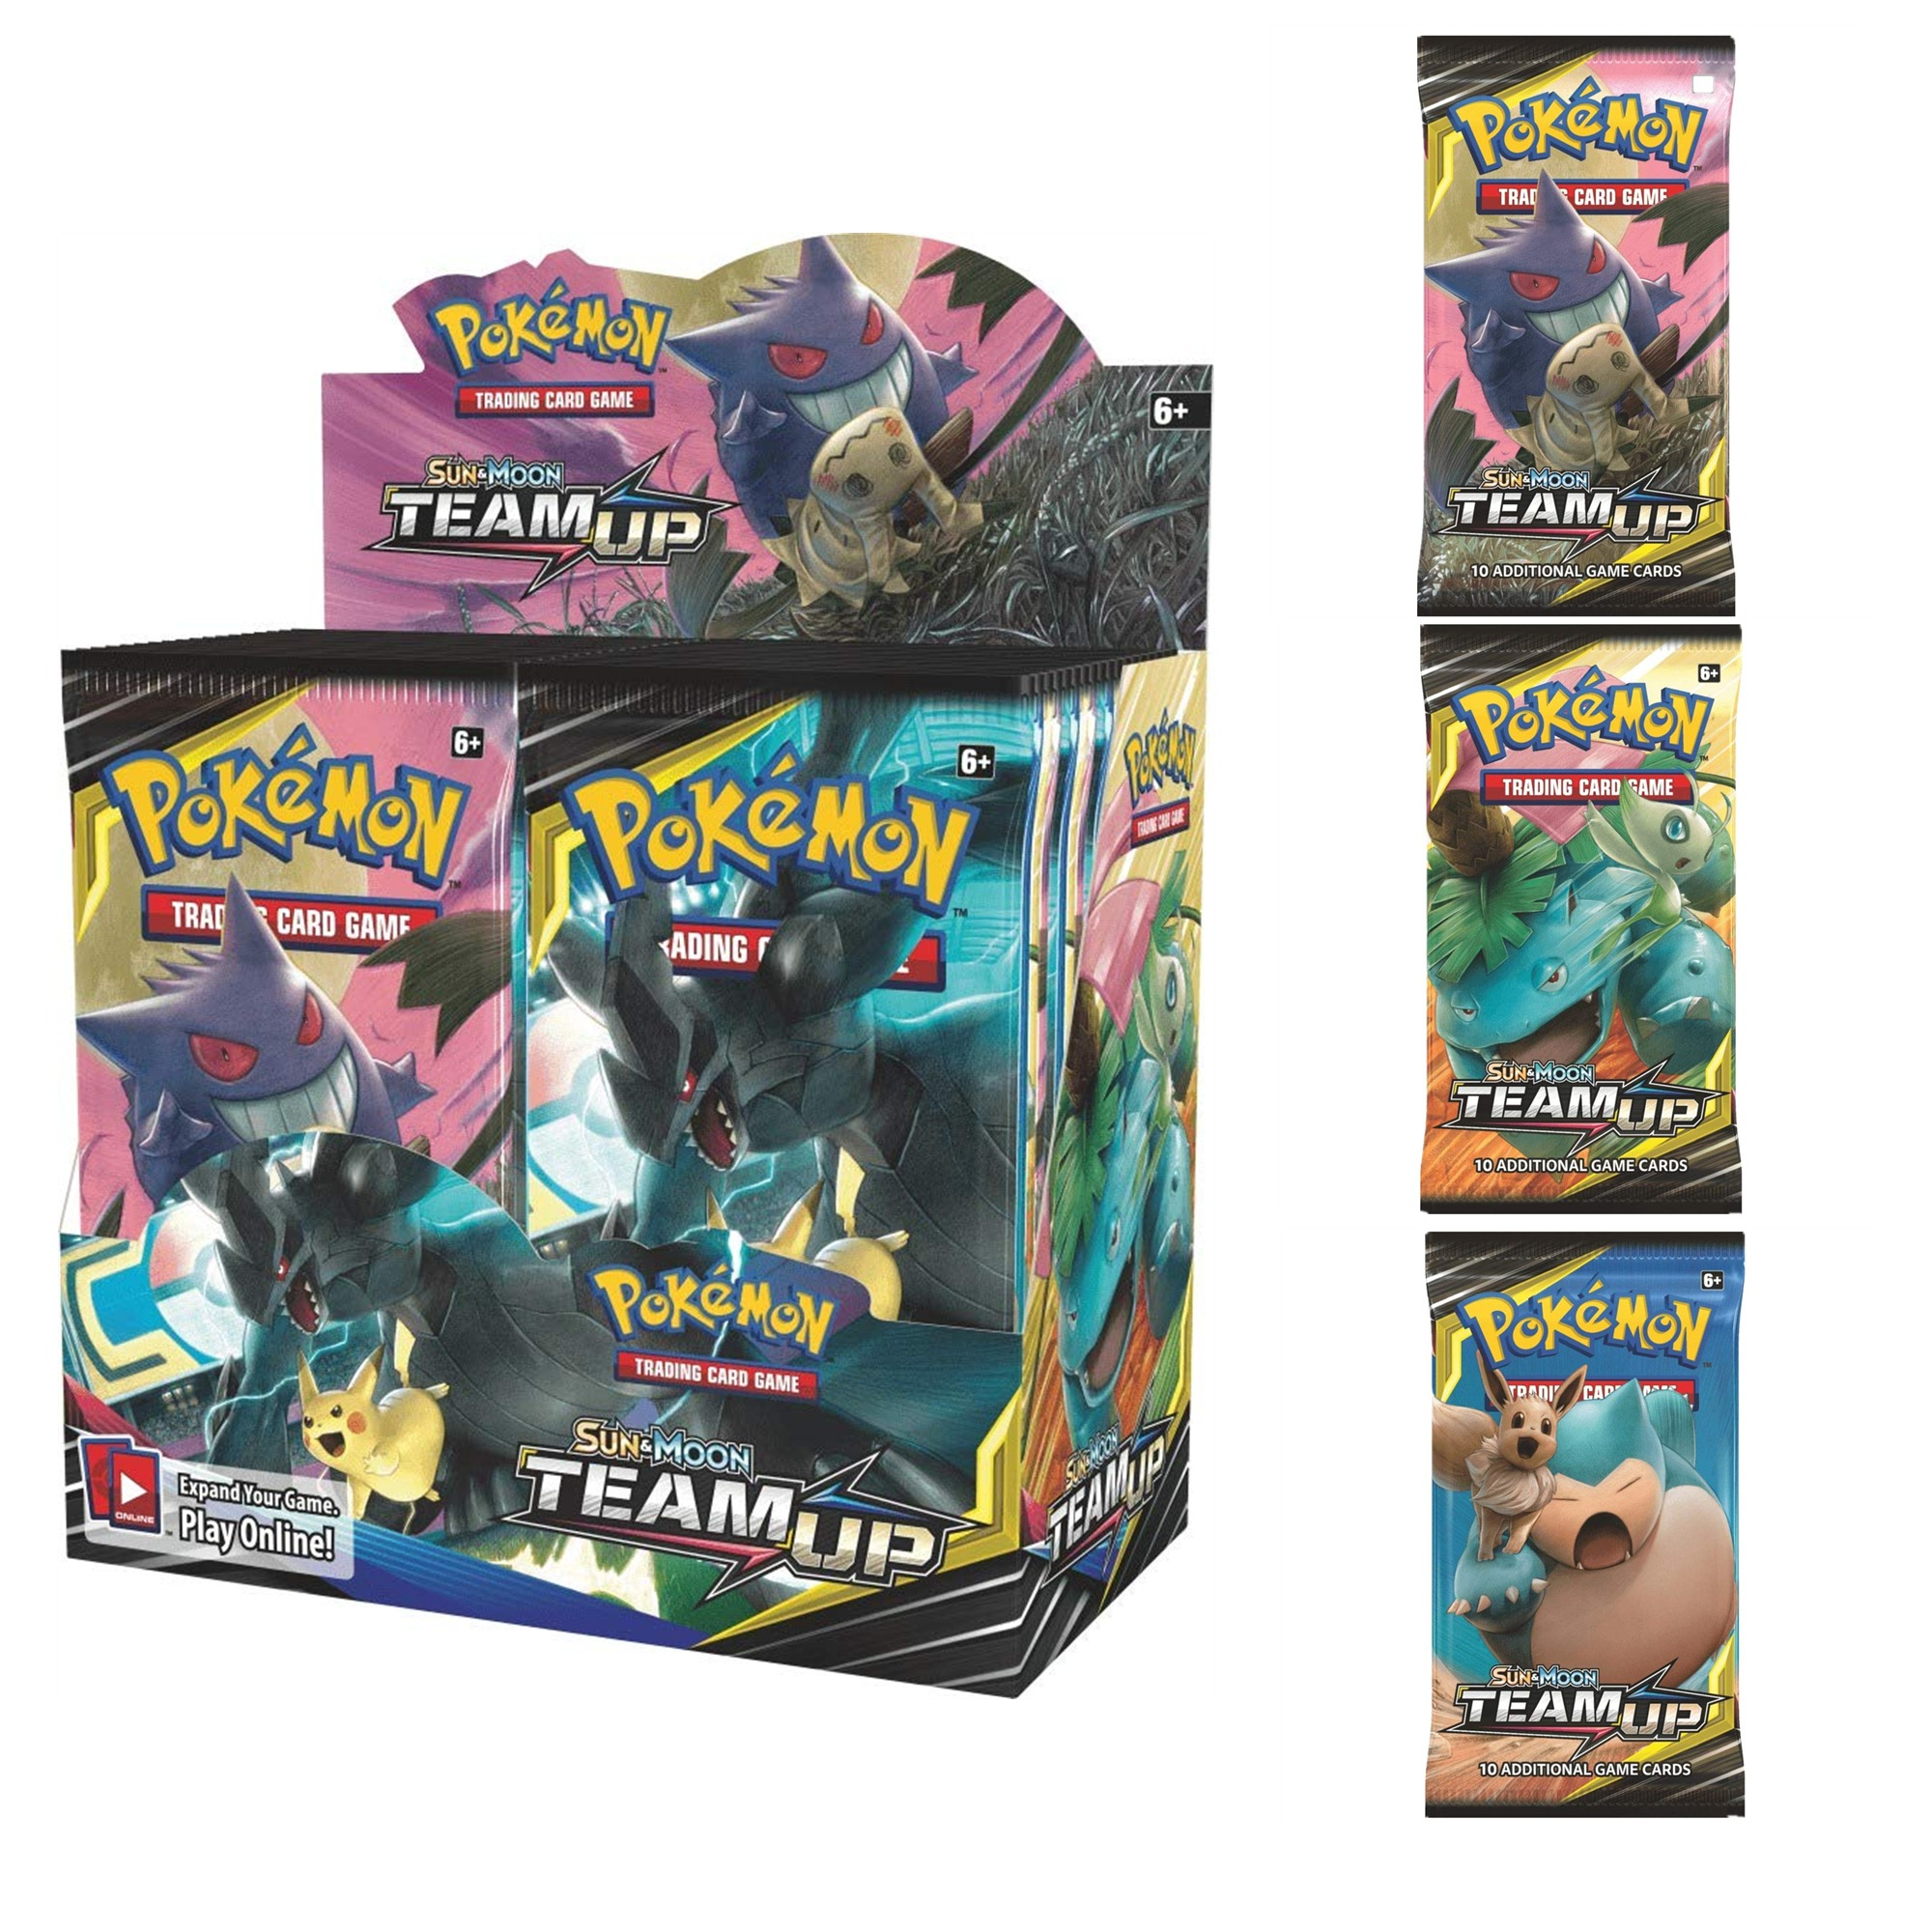 324-cards-font-b-pokemon-b-font-tcg-sun-moon-team-up-collectible-trading-card-set-high-quality-card-toy-collection